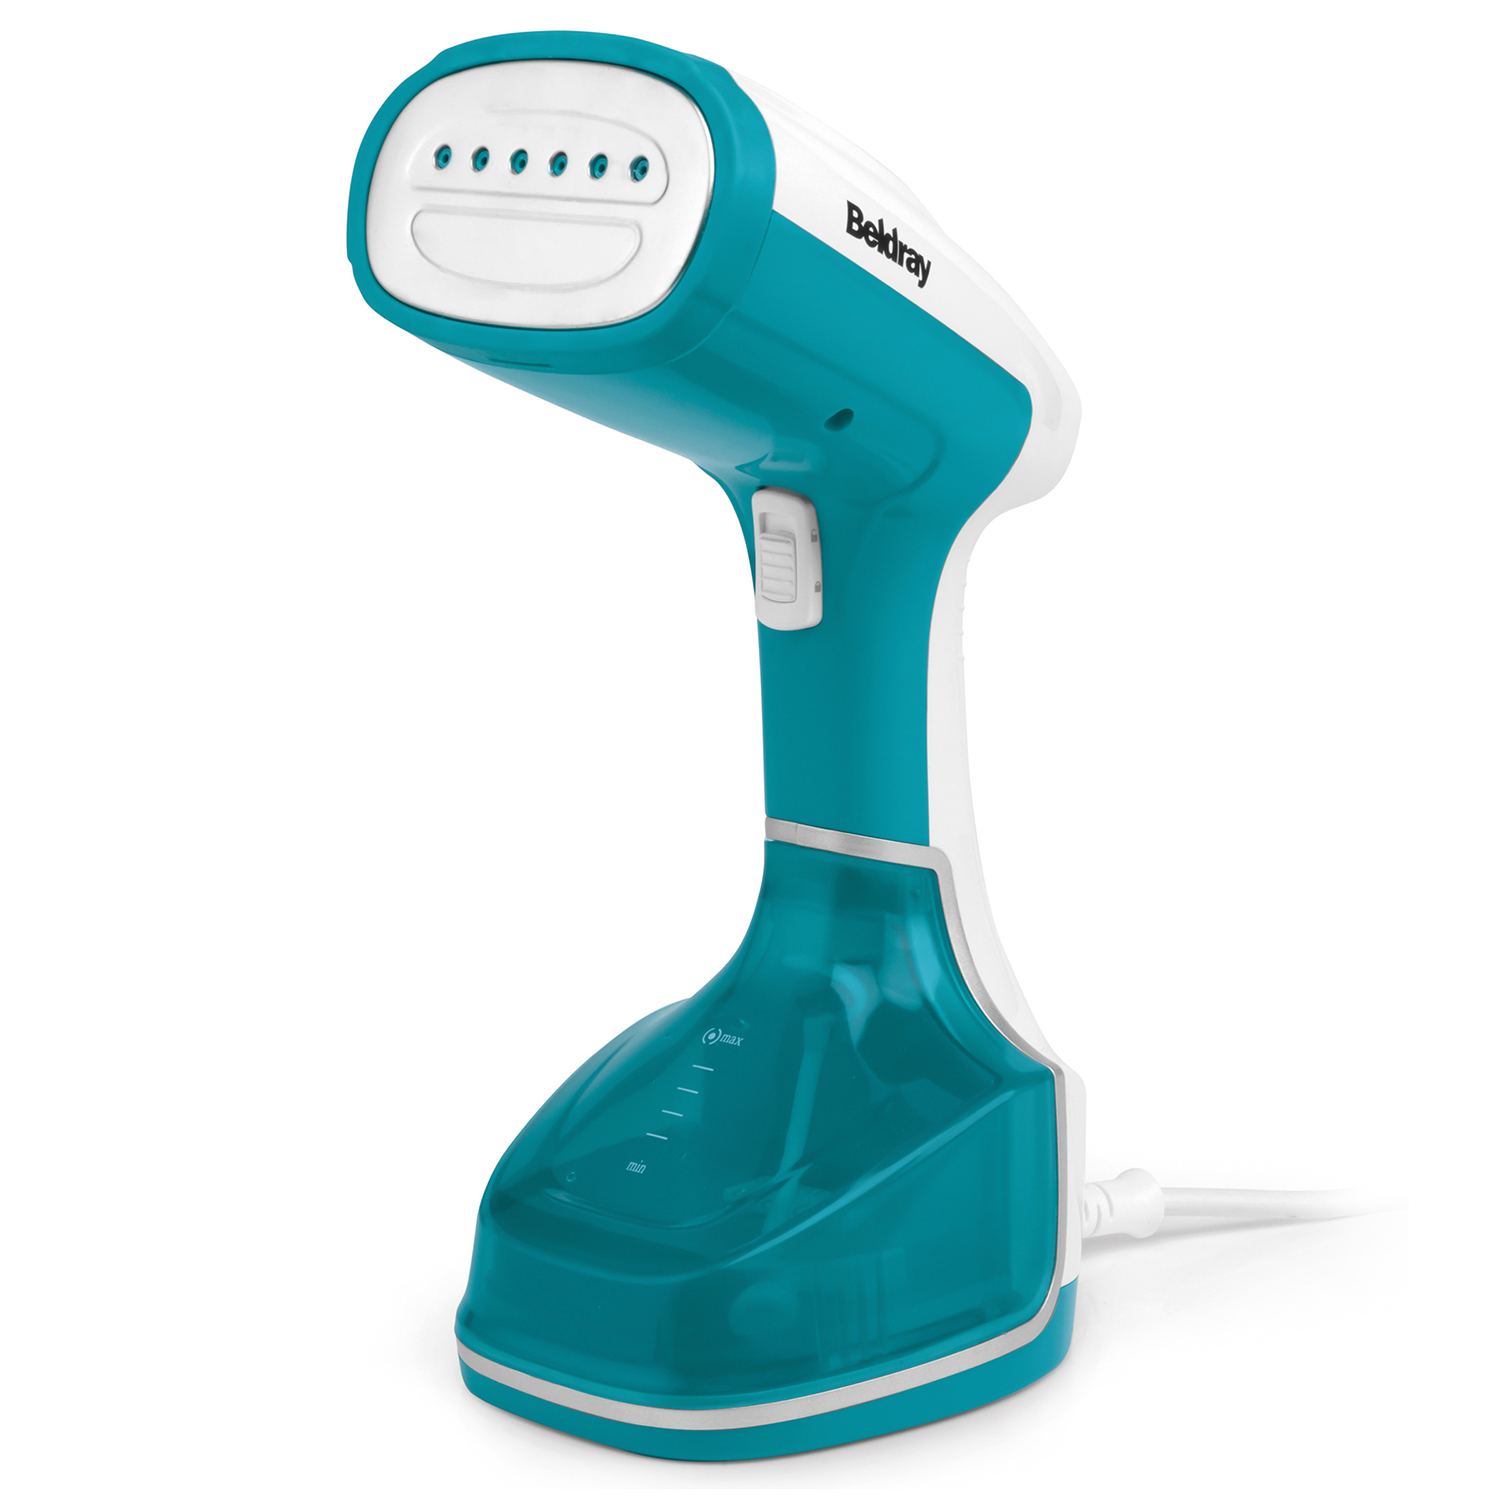 Beldray Multisteam Pro Garment Steamer